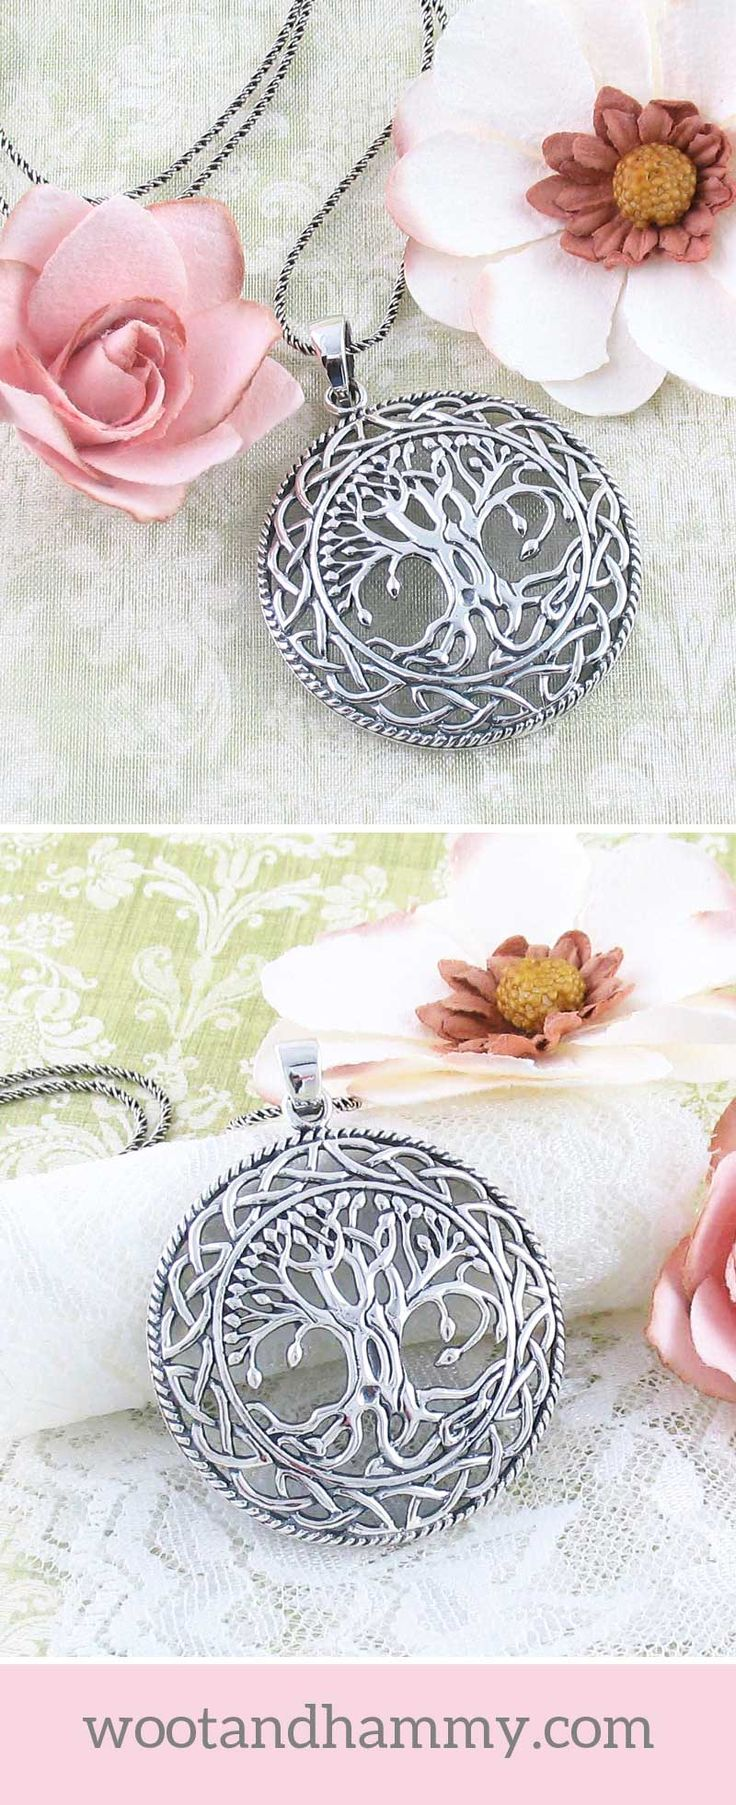 An intricately-detailed tree decorates the interior of this majestic Celtic knot pendant. With curving branches that end in lively leaf buds and intertwined roots that anchor it to the ground, this tree is aged, yet full of character and life.The pendant has a pronounced rounded shape that creates a dramatic play of light over its surface.